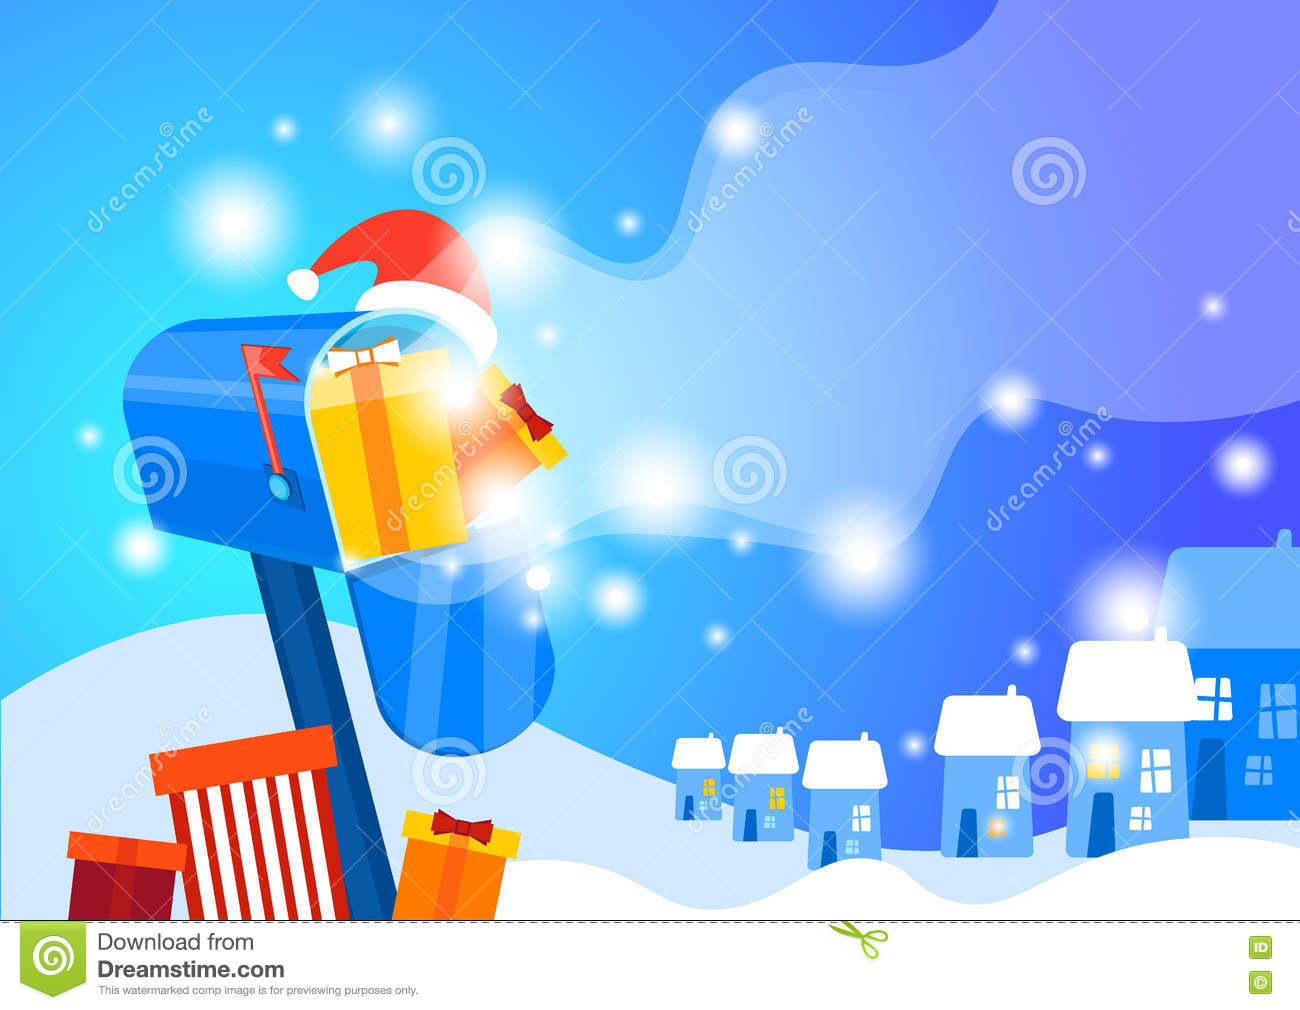 Mail box with present happy new year merry christmas greeting card download mail box with present happy new year merry christmas greeting card banner stock vector m4hsunfo